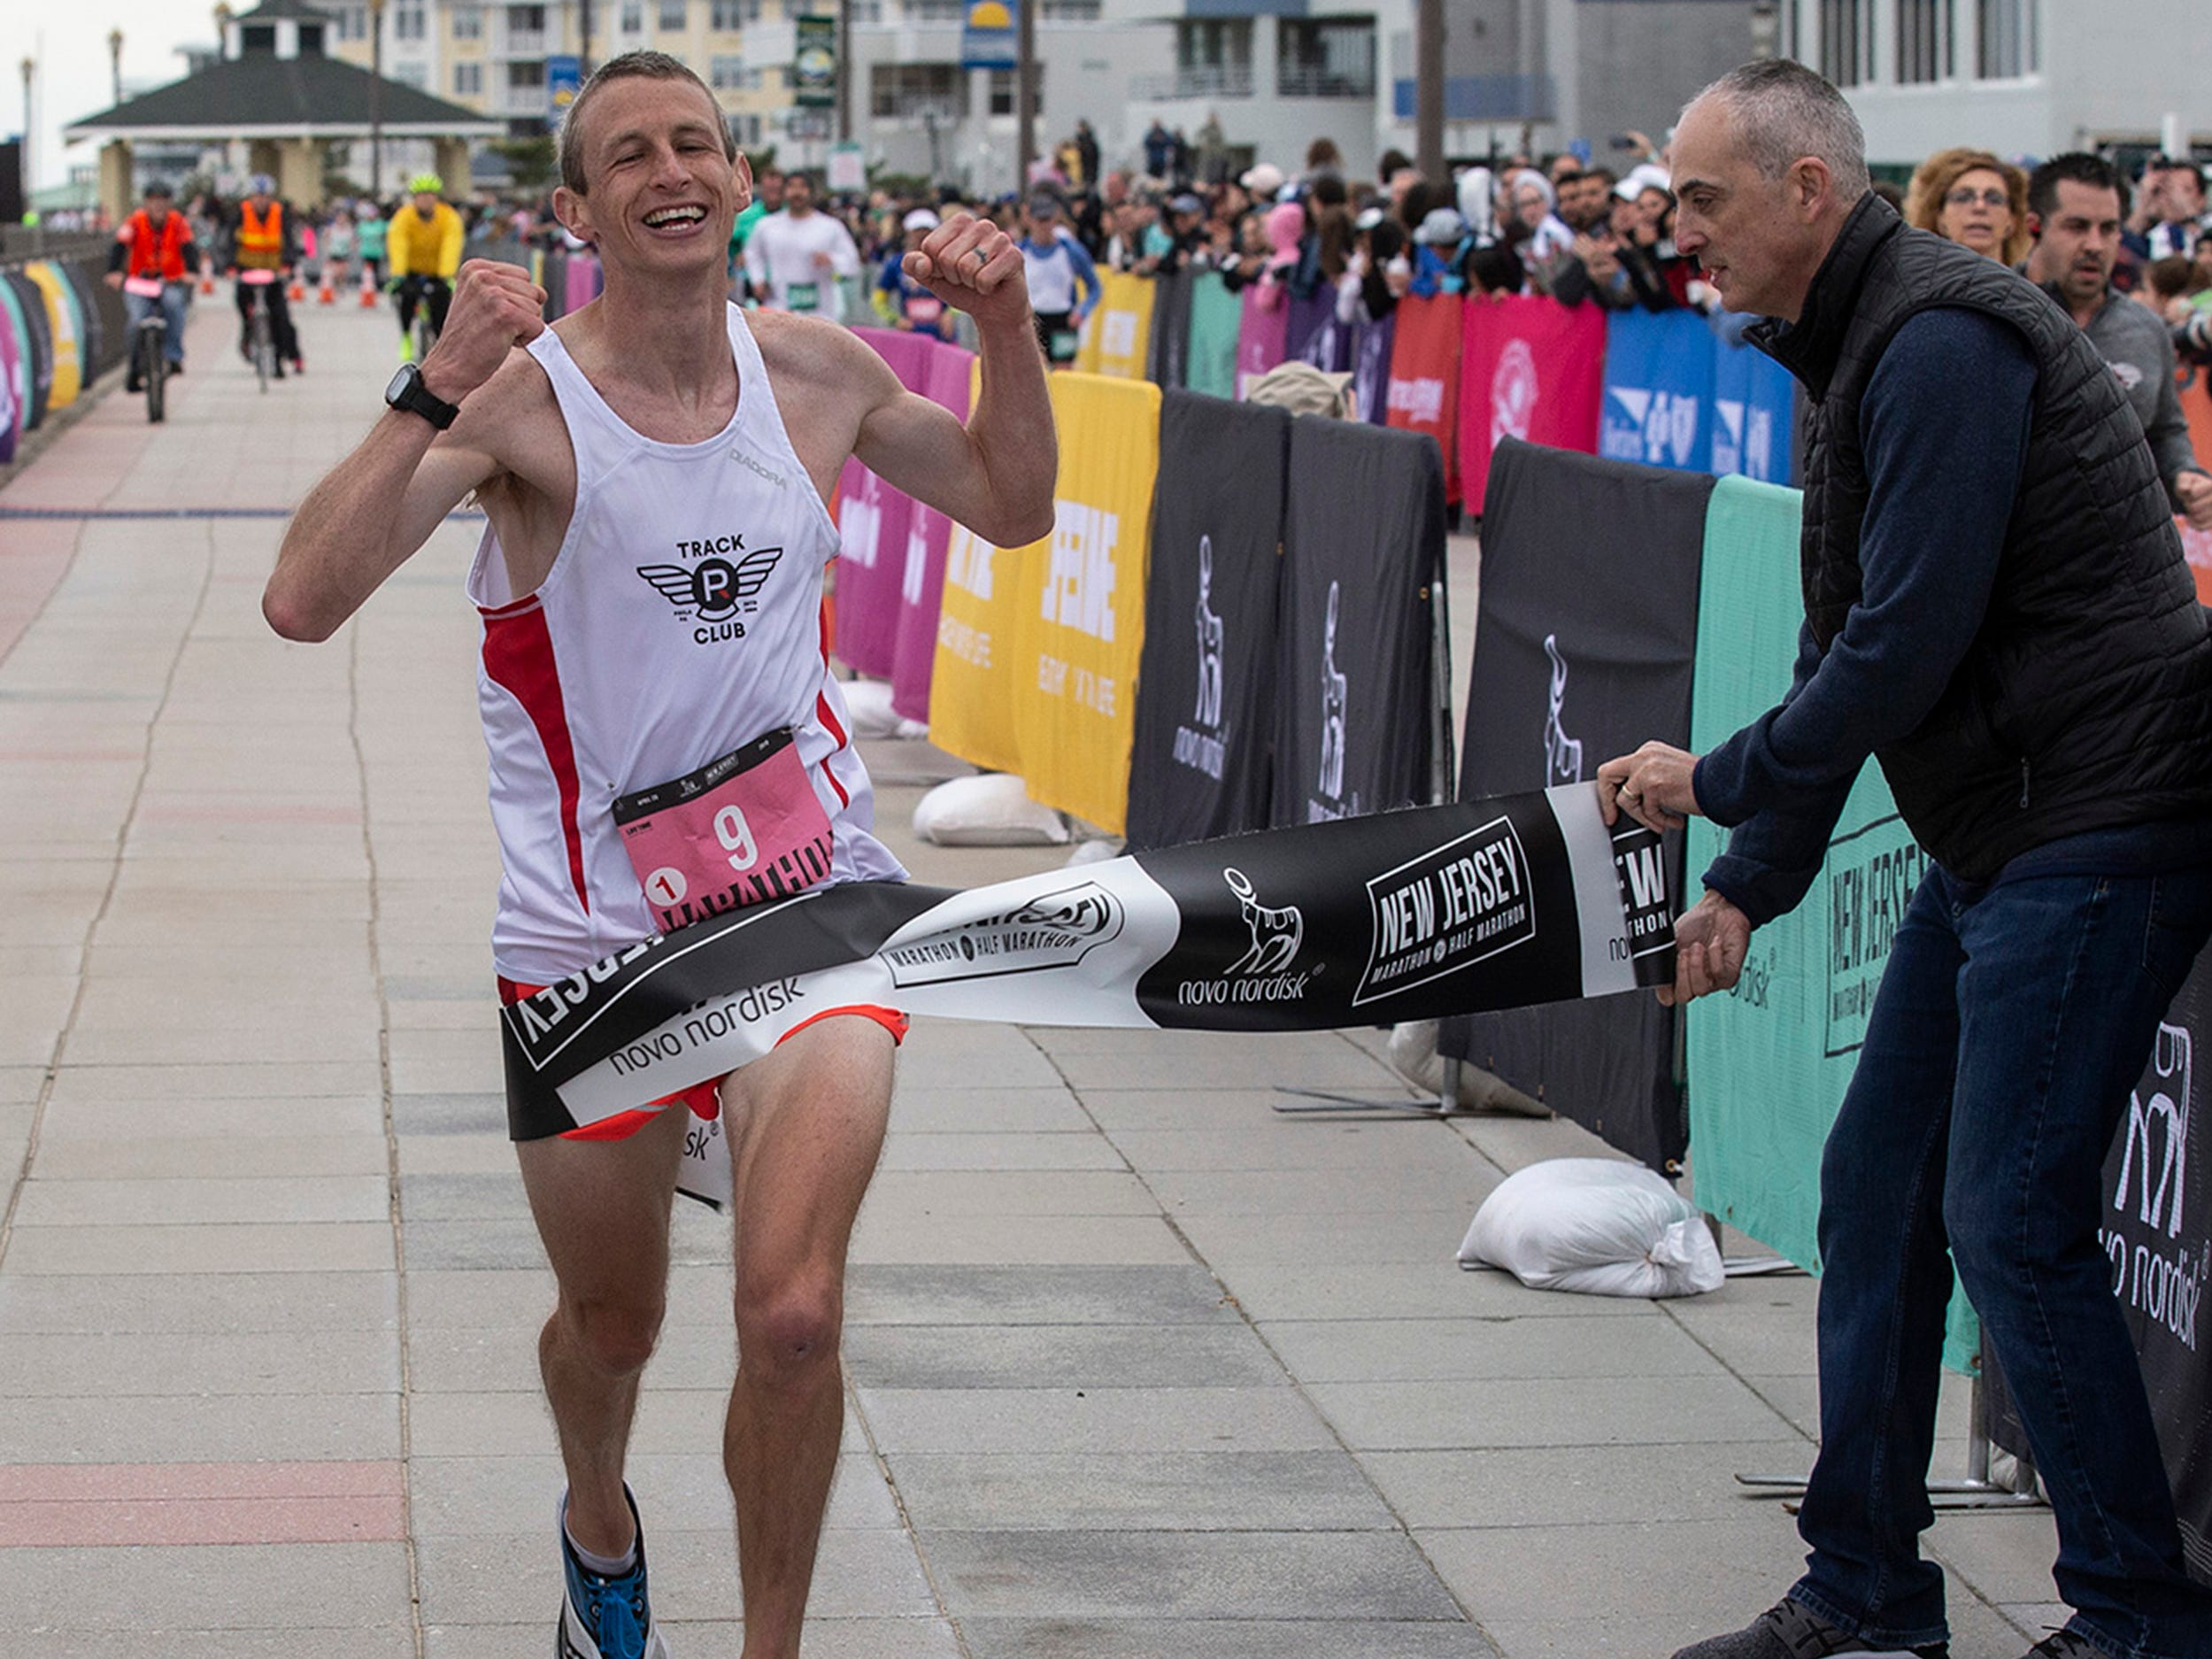 Sean Clark of Philadelphia finishes first in the Men's race at the 2019 Novo Nordisk New Jersey Marathon and Half Marathon which started at Monmouth Park in Oceanport and ended at Ocean Promenade in Long Branch.